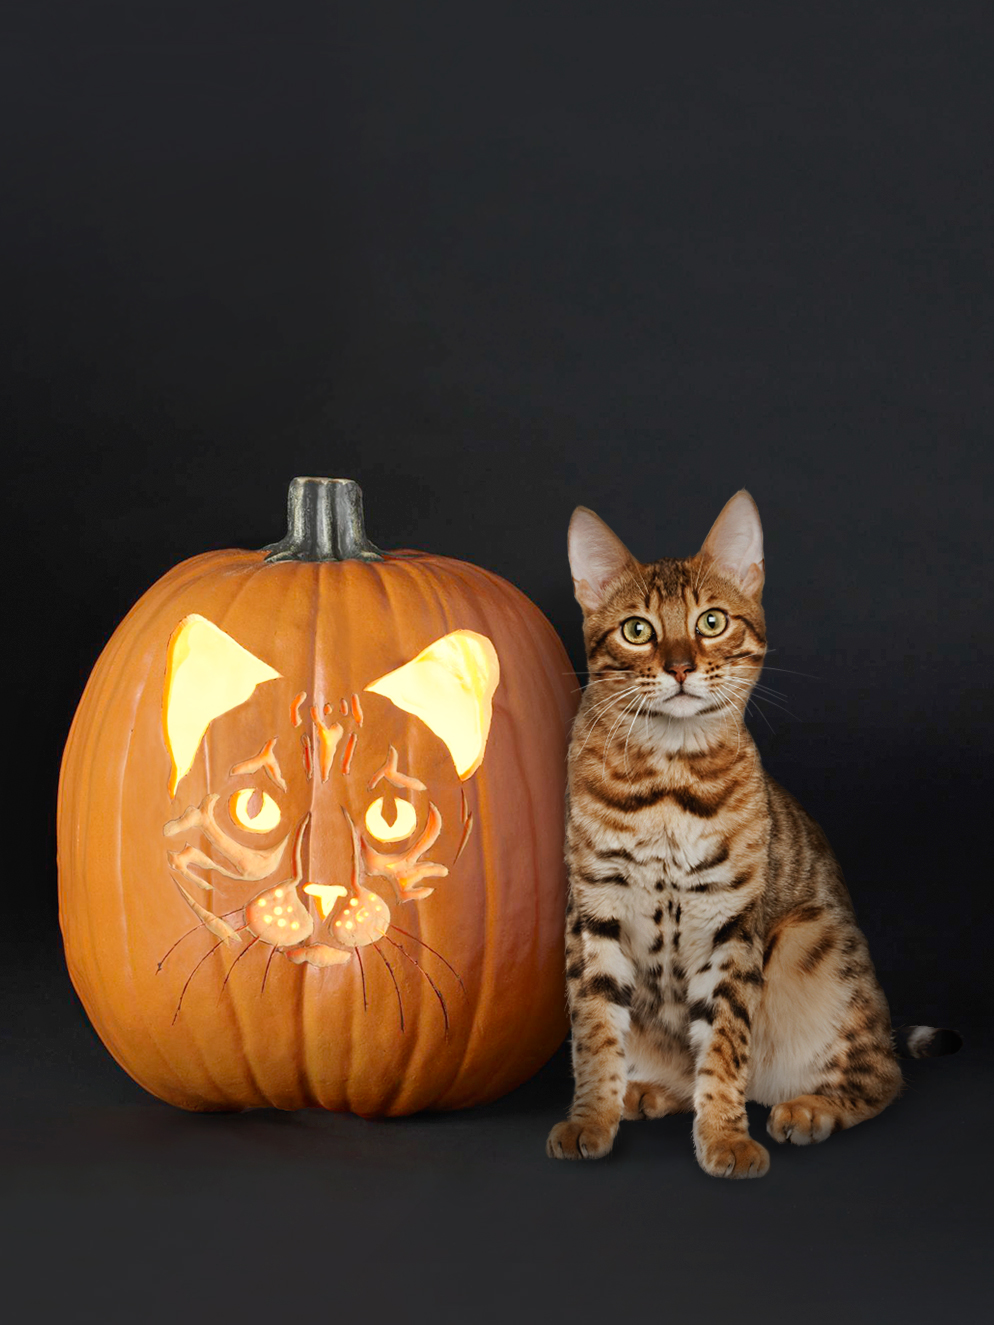 Bengal cat breed and stenciled pumpkin